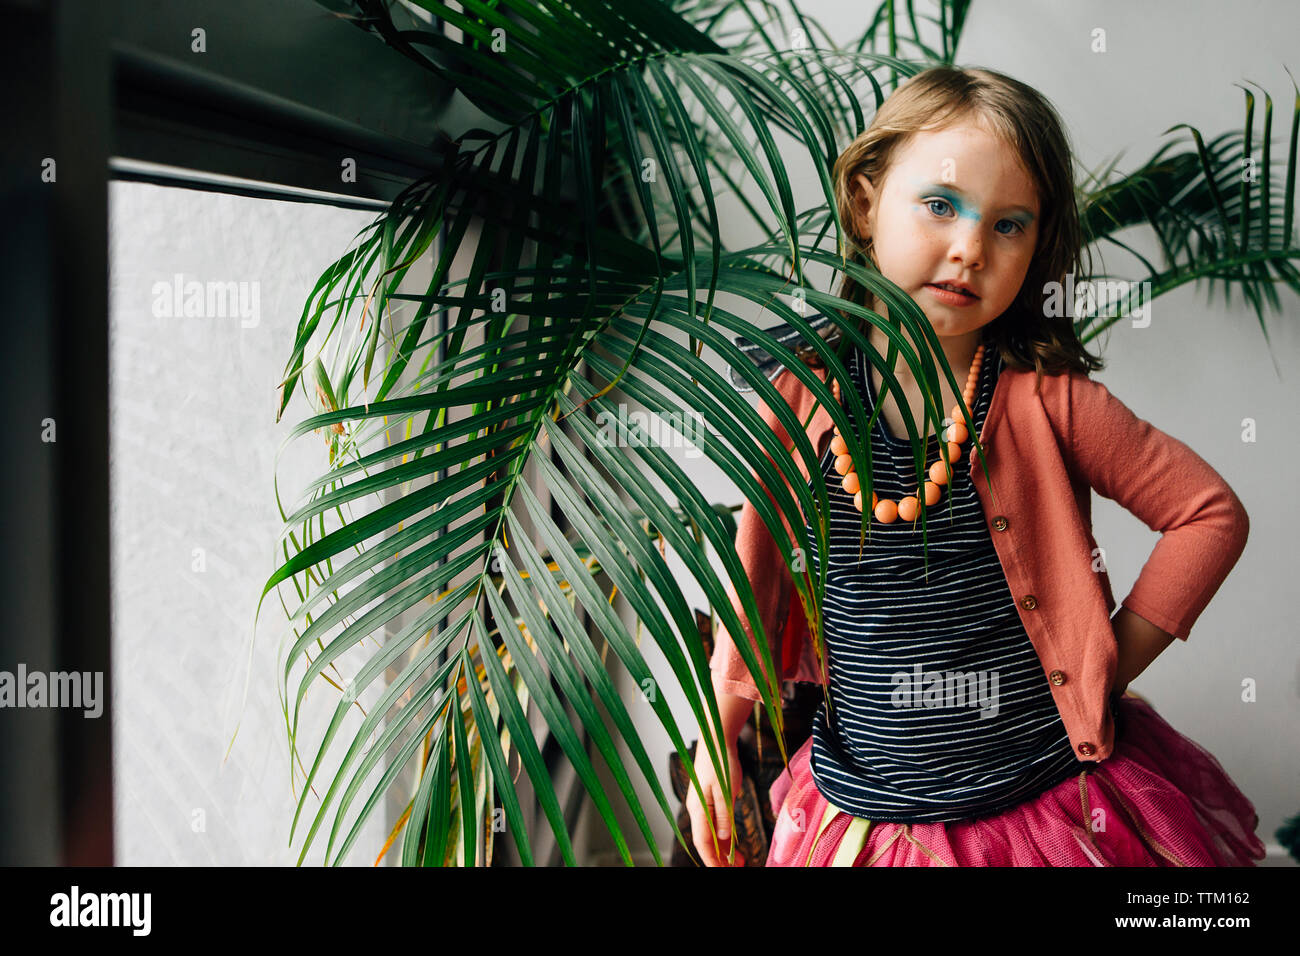 Portrait of girl with messy eyeshadow standing by plants at home - Stock Image